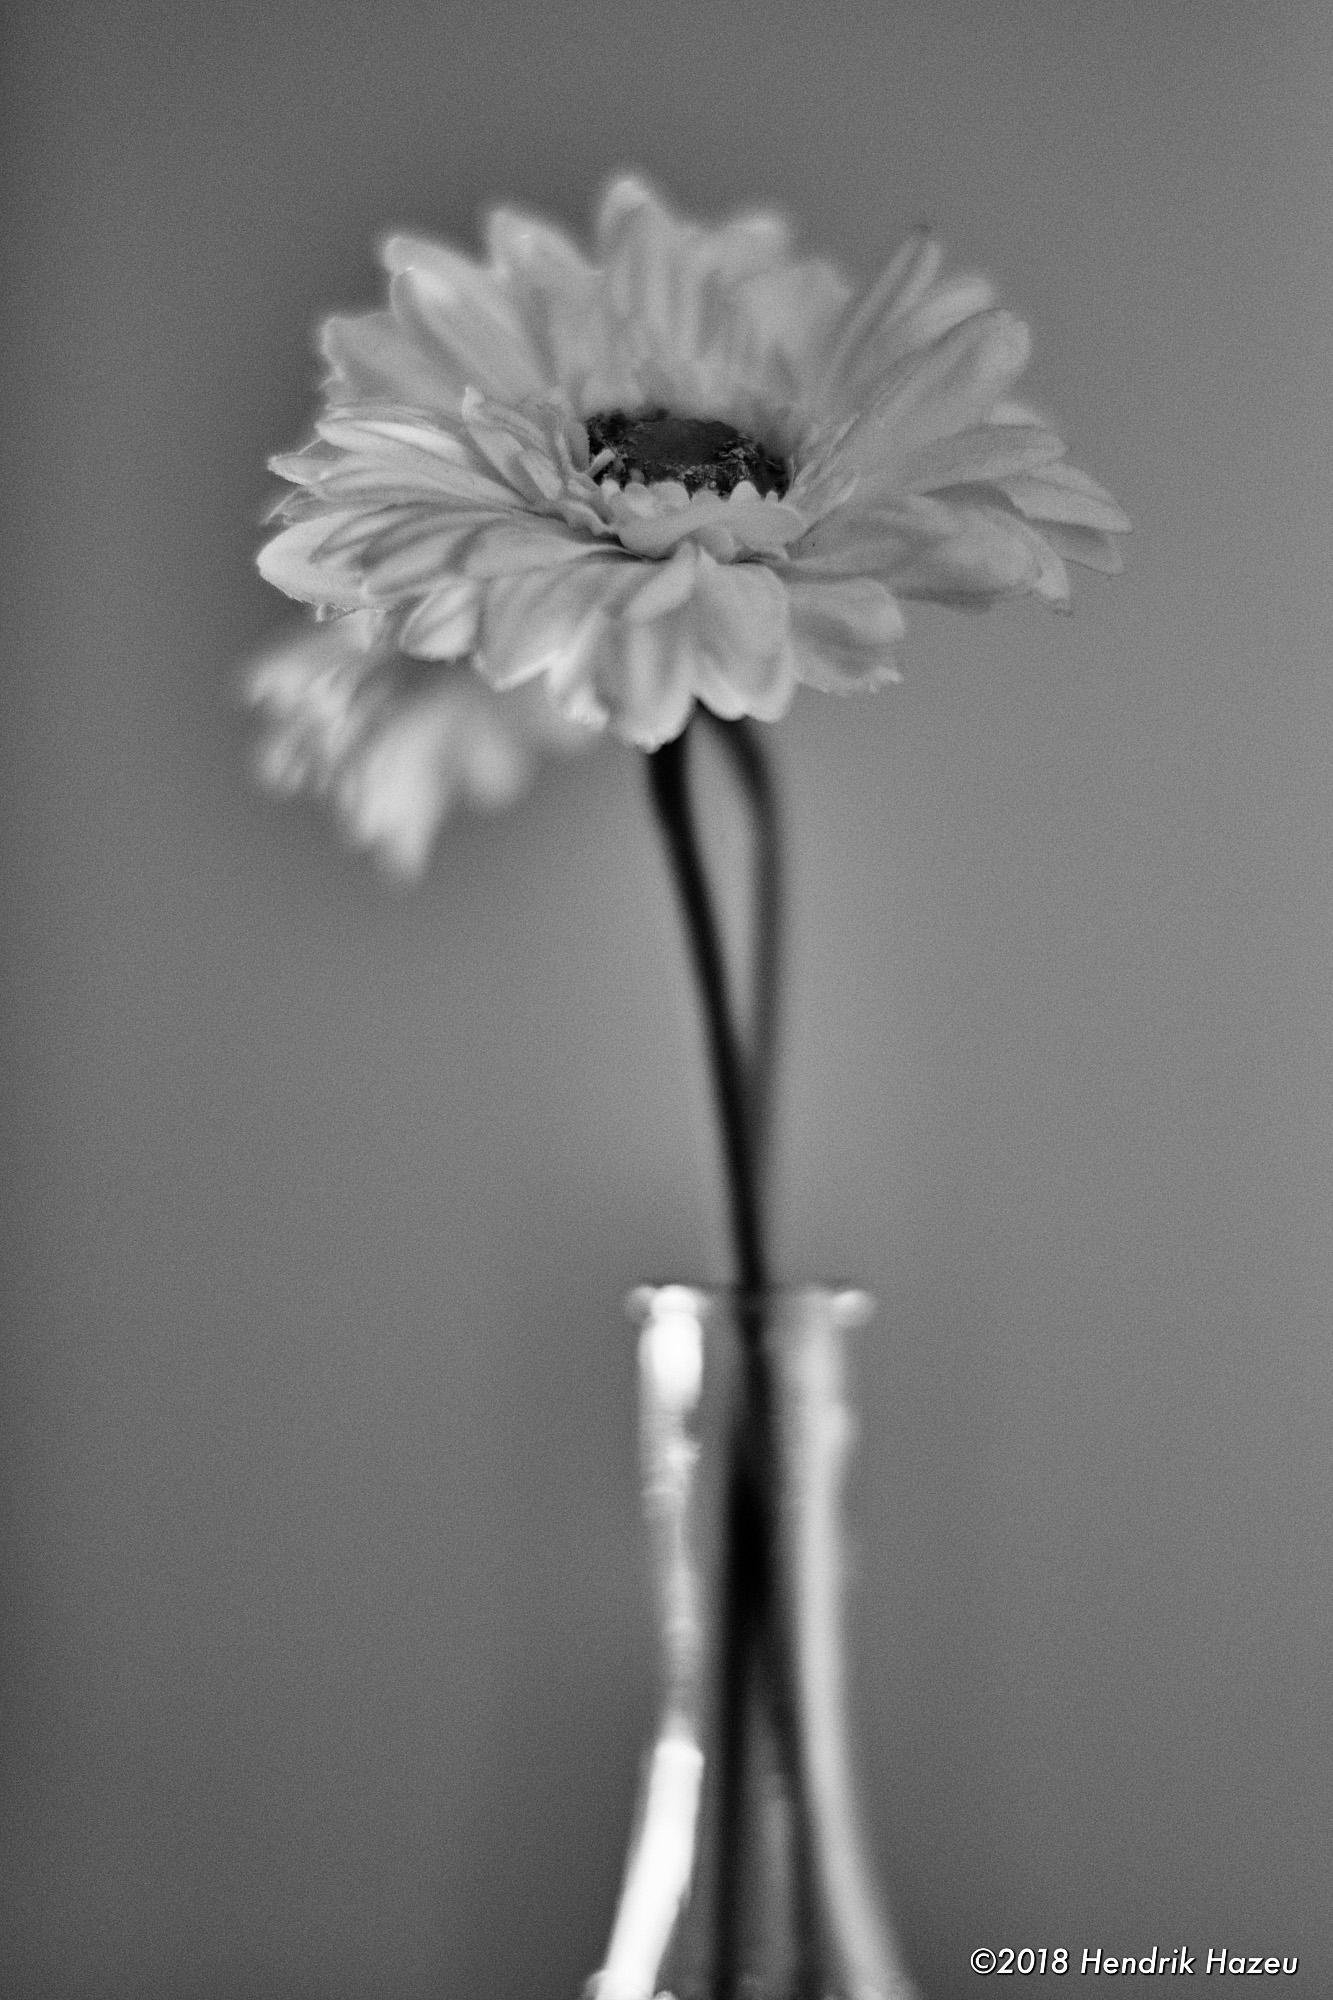 Flower in glass, 58mm f/1.4 @f/1.4